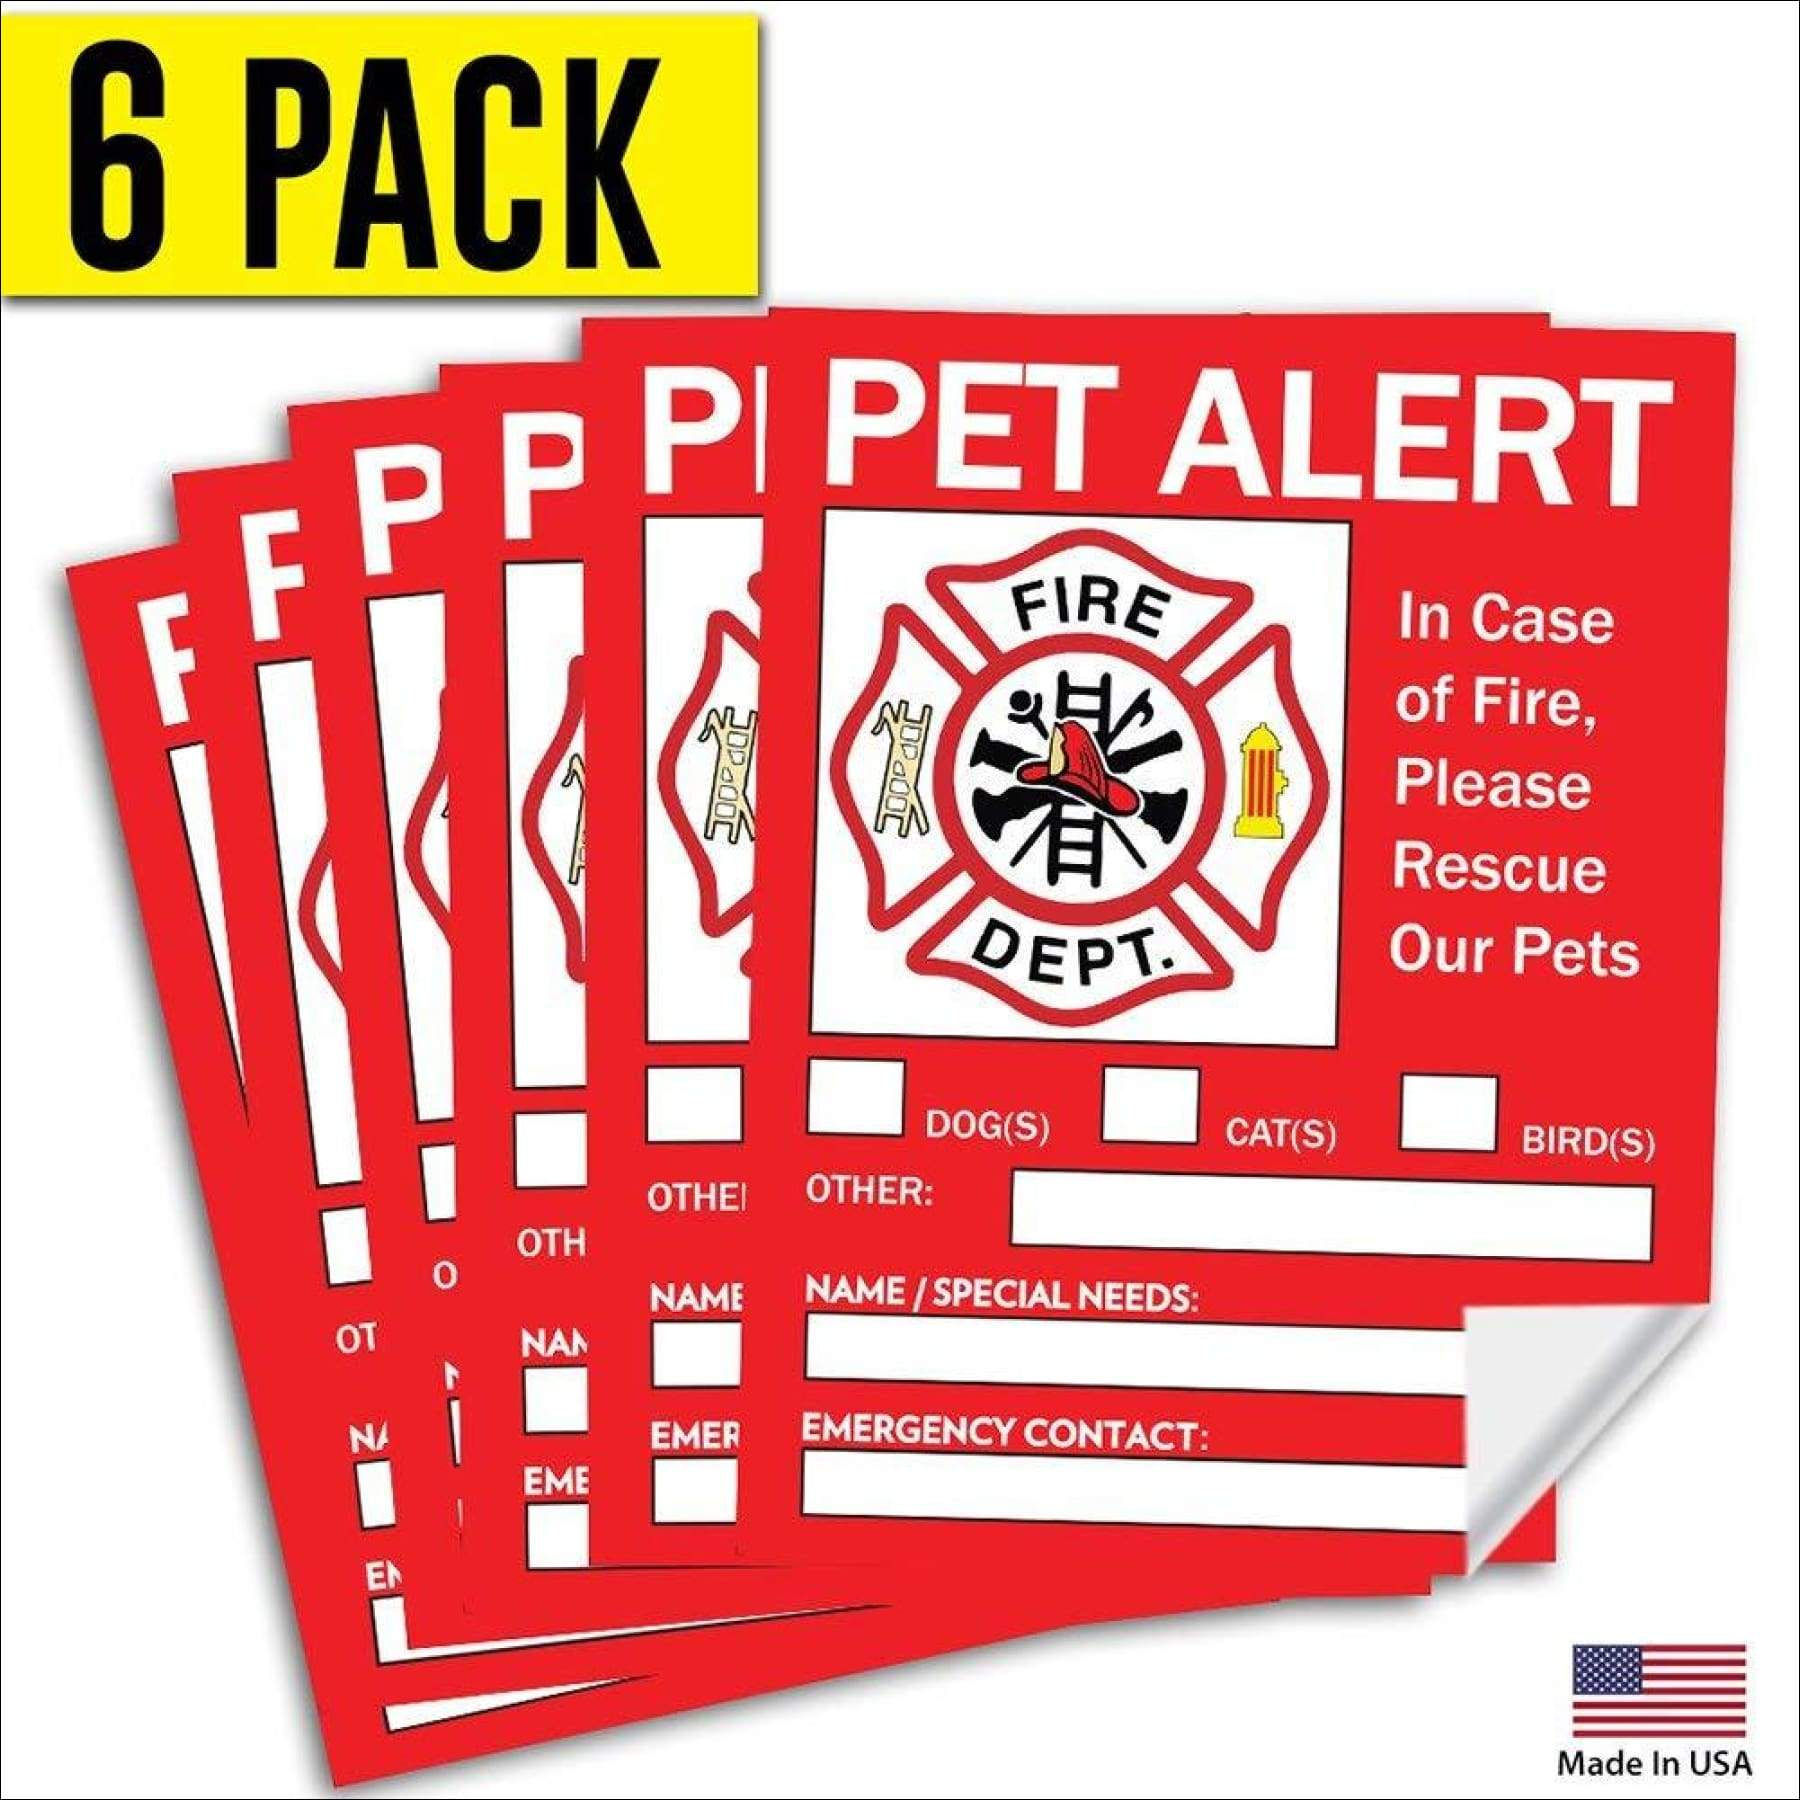 or house and know to rescue In Case of a Fire Emergency These stickers help with dog and cat safety. 4 Pack door Pet Inside Finder Sticker Firefighters will see the alert on your window